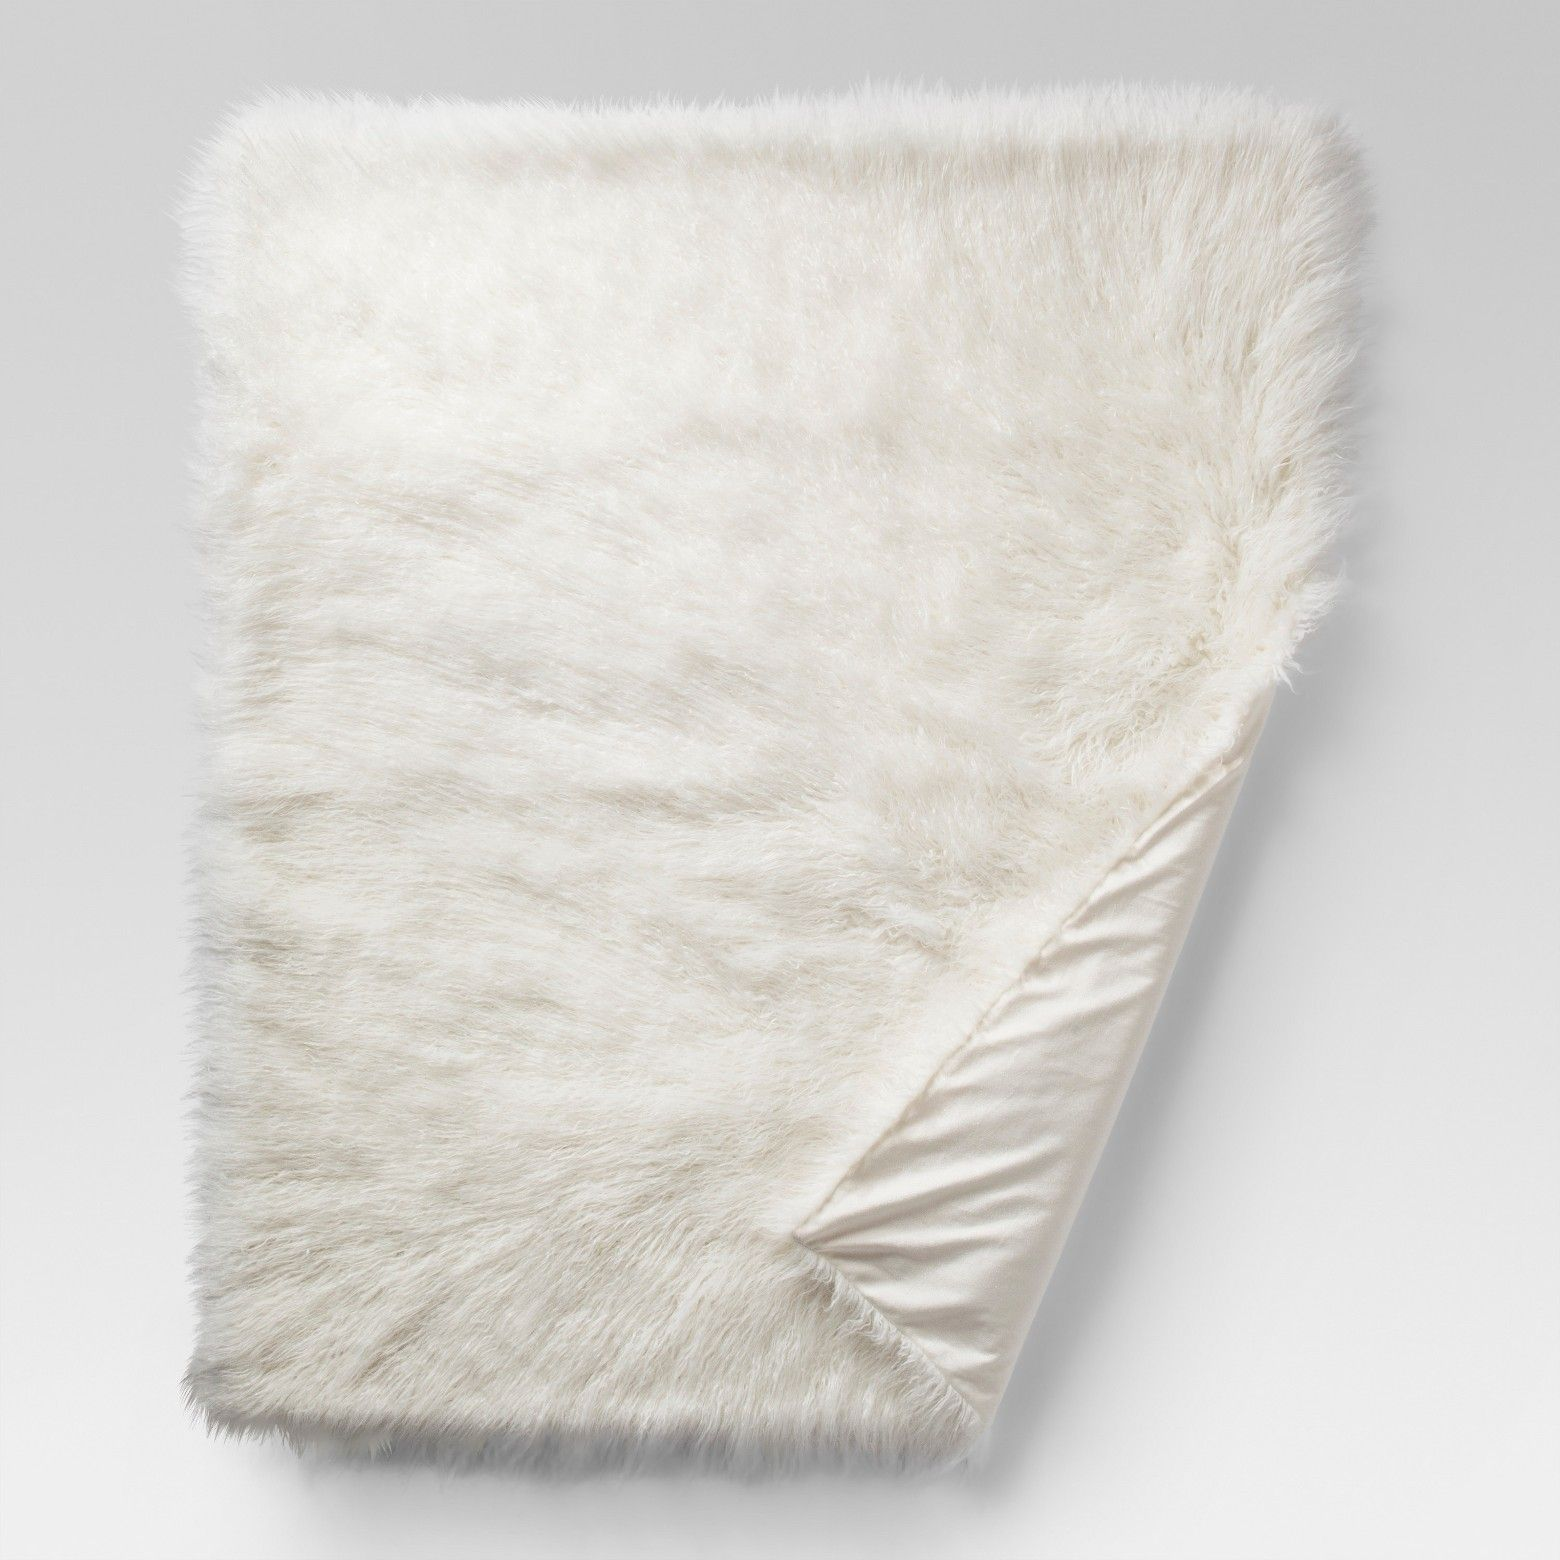 Add A Touch Of Modern Glam Decor To Any Room With The Mongolian Faux Fur Throw Blanket From Projec Faux Fur Throw Blanket Fur Throw Blanket Cream Throw Blanket